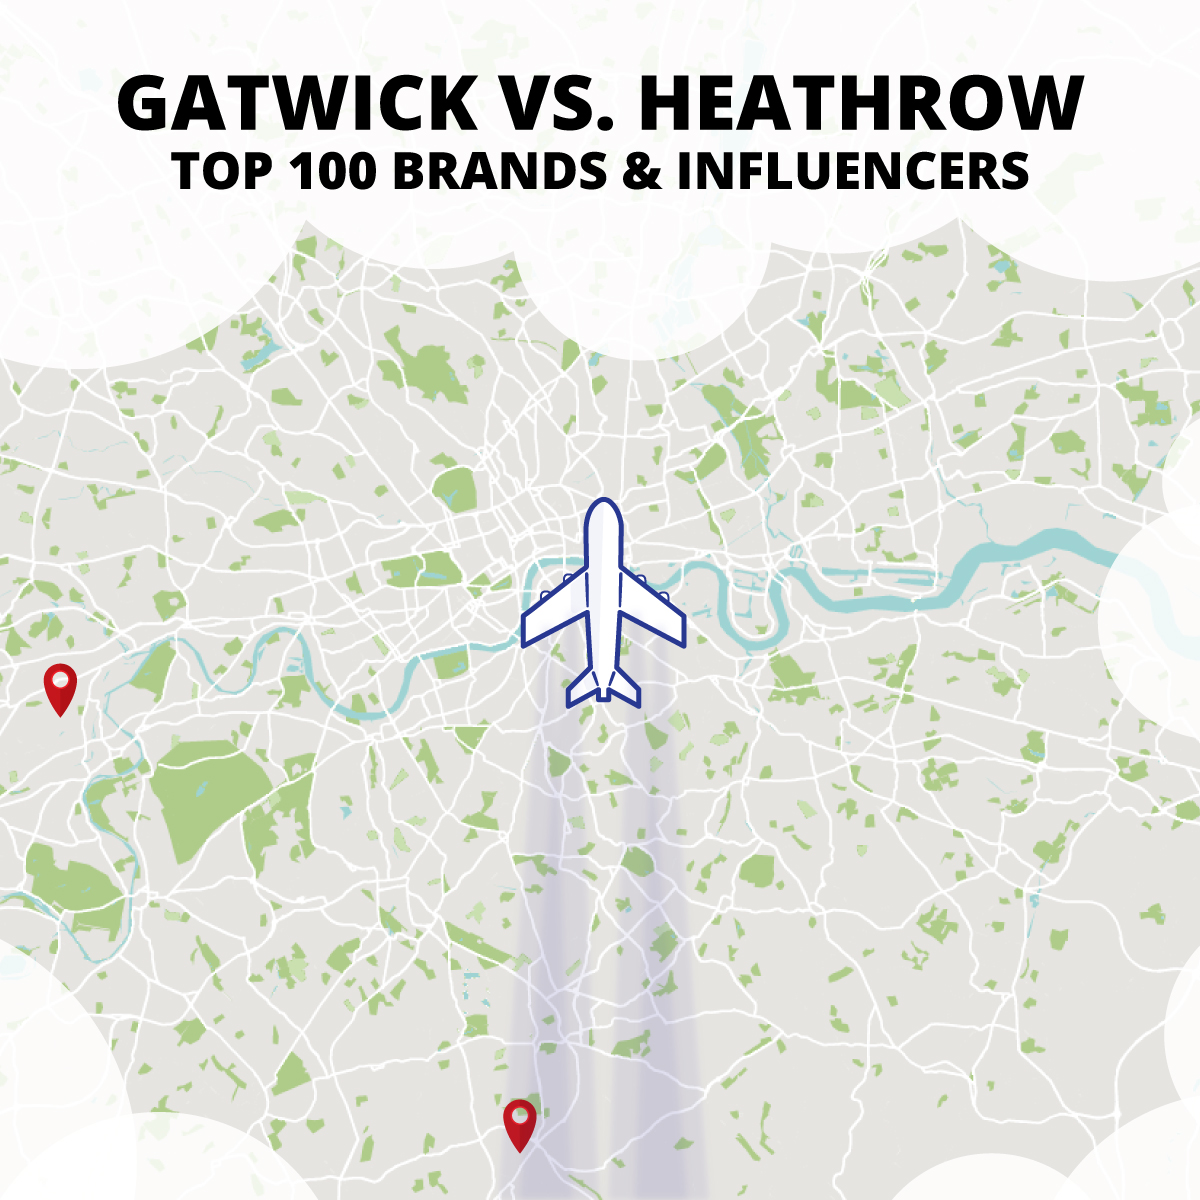 Onalytica - Gatwick vs. Heathrow Top 100 Influencers and Brands